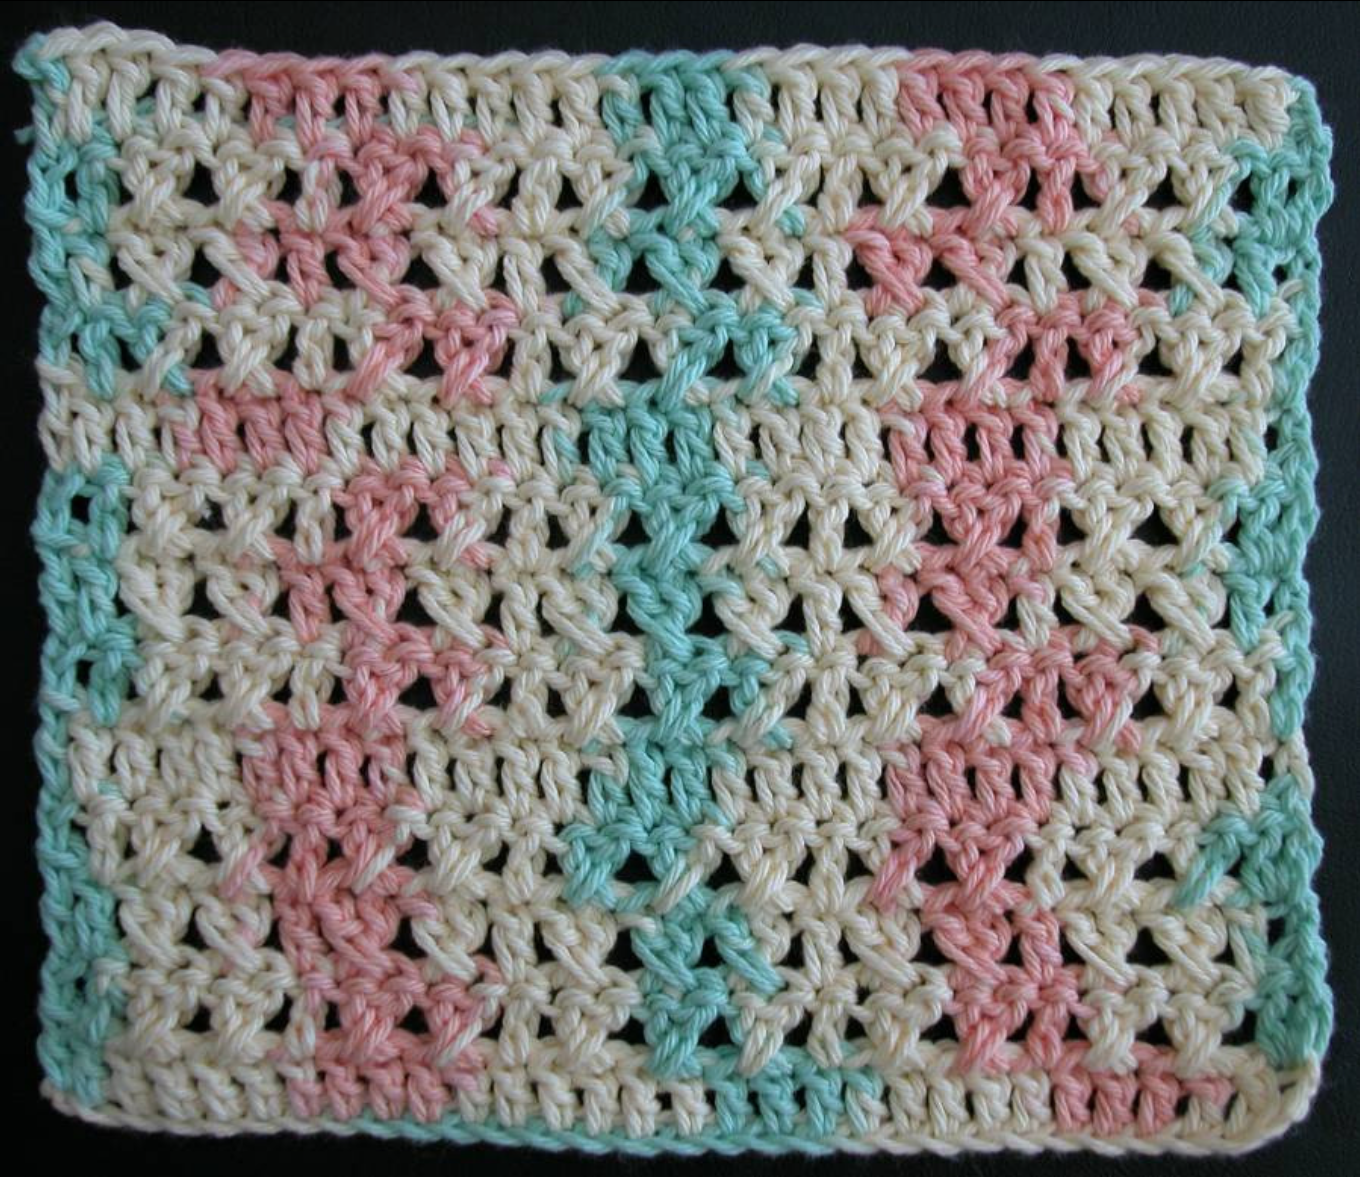 Free crochet dishcloth pattern: Formal Garden by Drew Emborsky aka The Crochet Dude